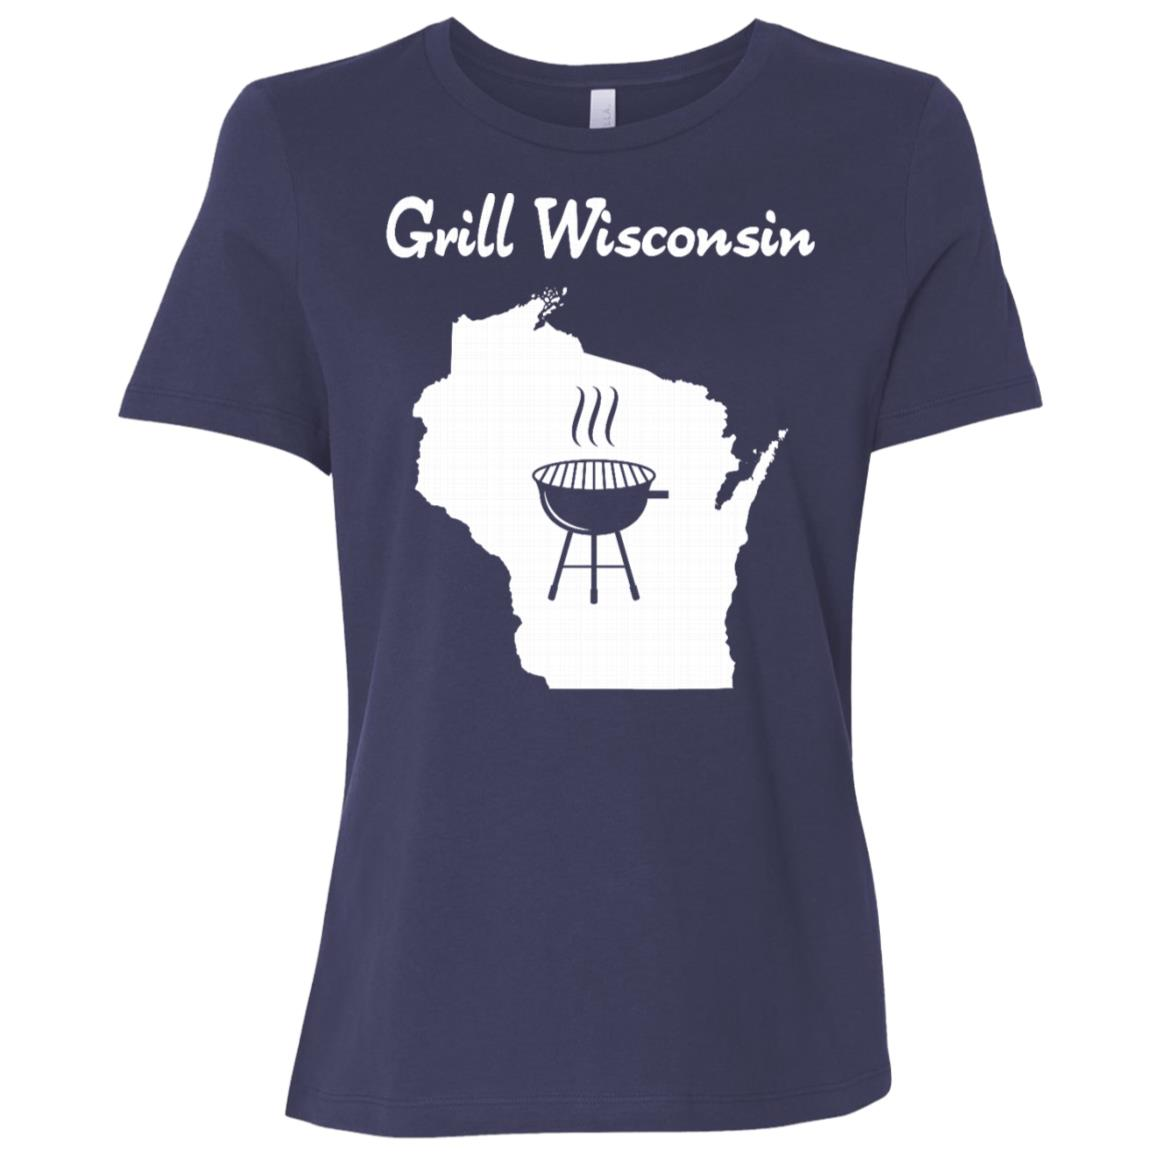 Grill Wisconsin awesome sconnie beer brat grilling Women Short Sleeve T-Shirt